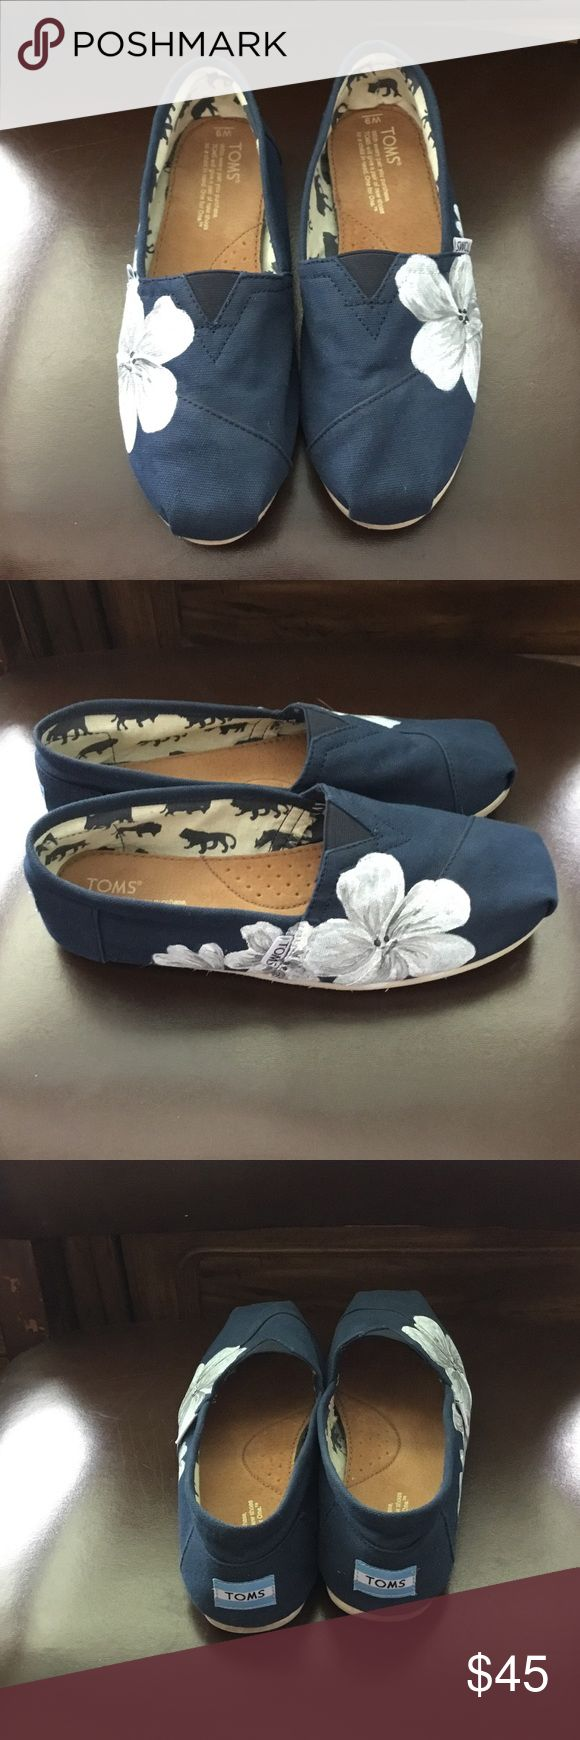 Navy TOM'S with hand painted white flower design Gently used Tom's. Beautiful hand painted flower detail on sides. Super cute for summer! TOMS Shoes Flats & Loafers